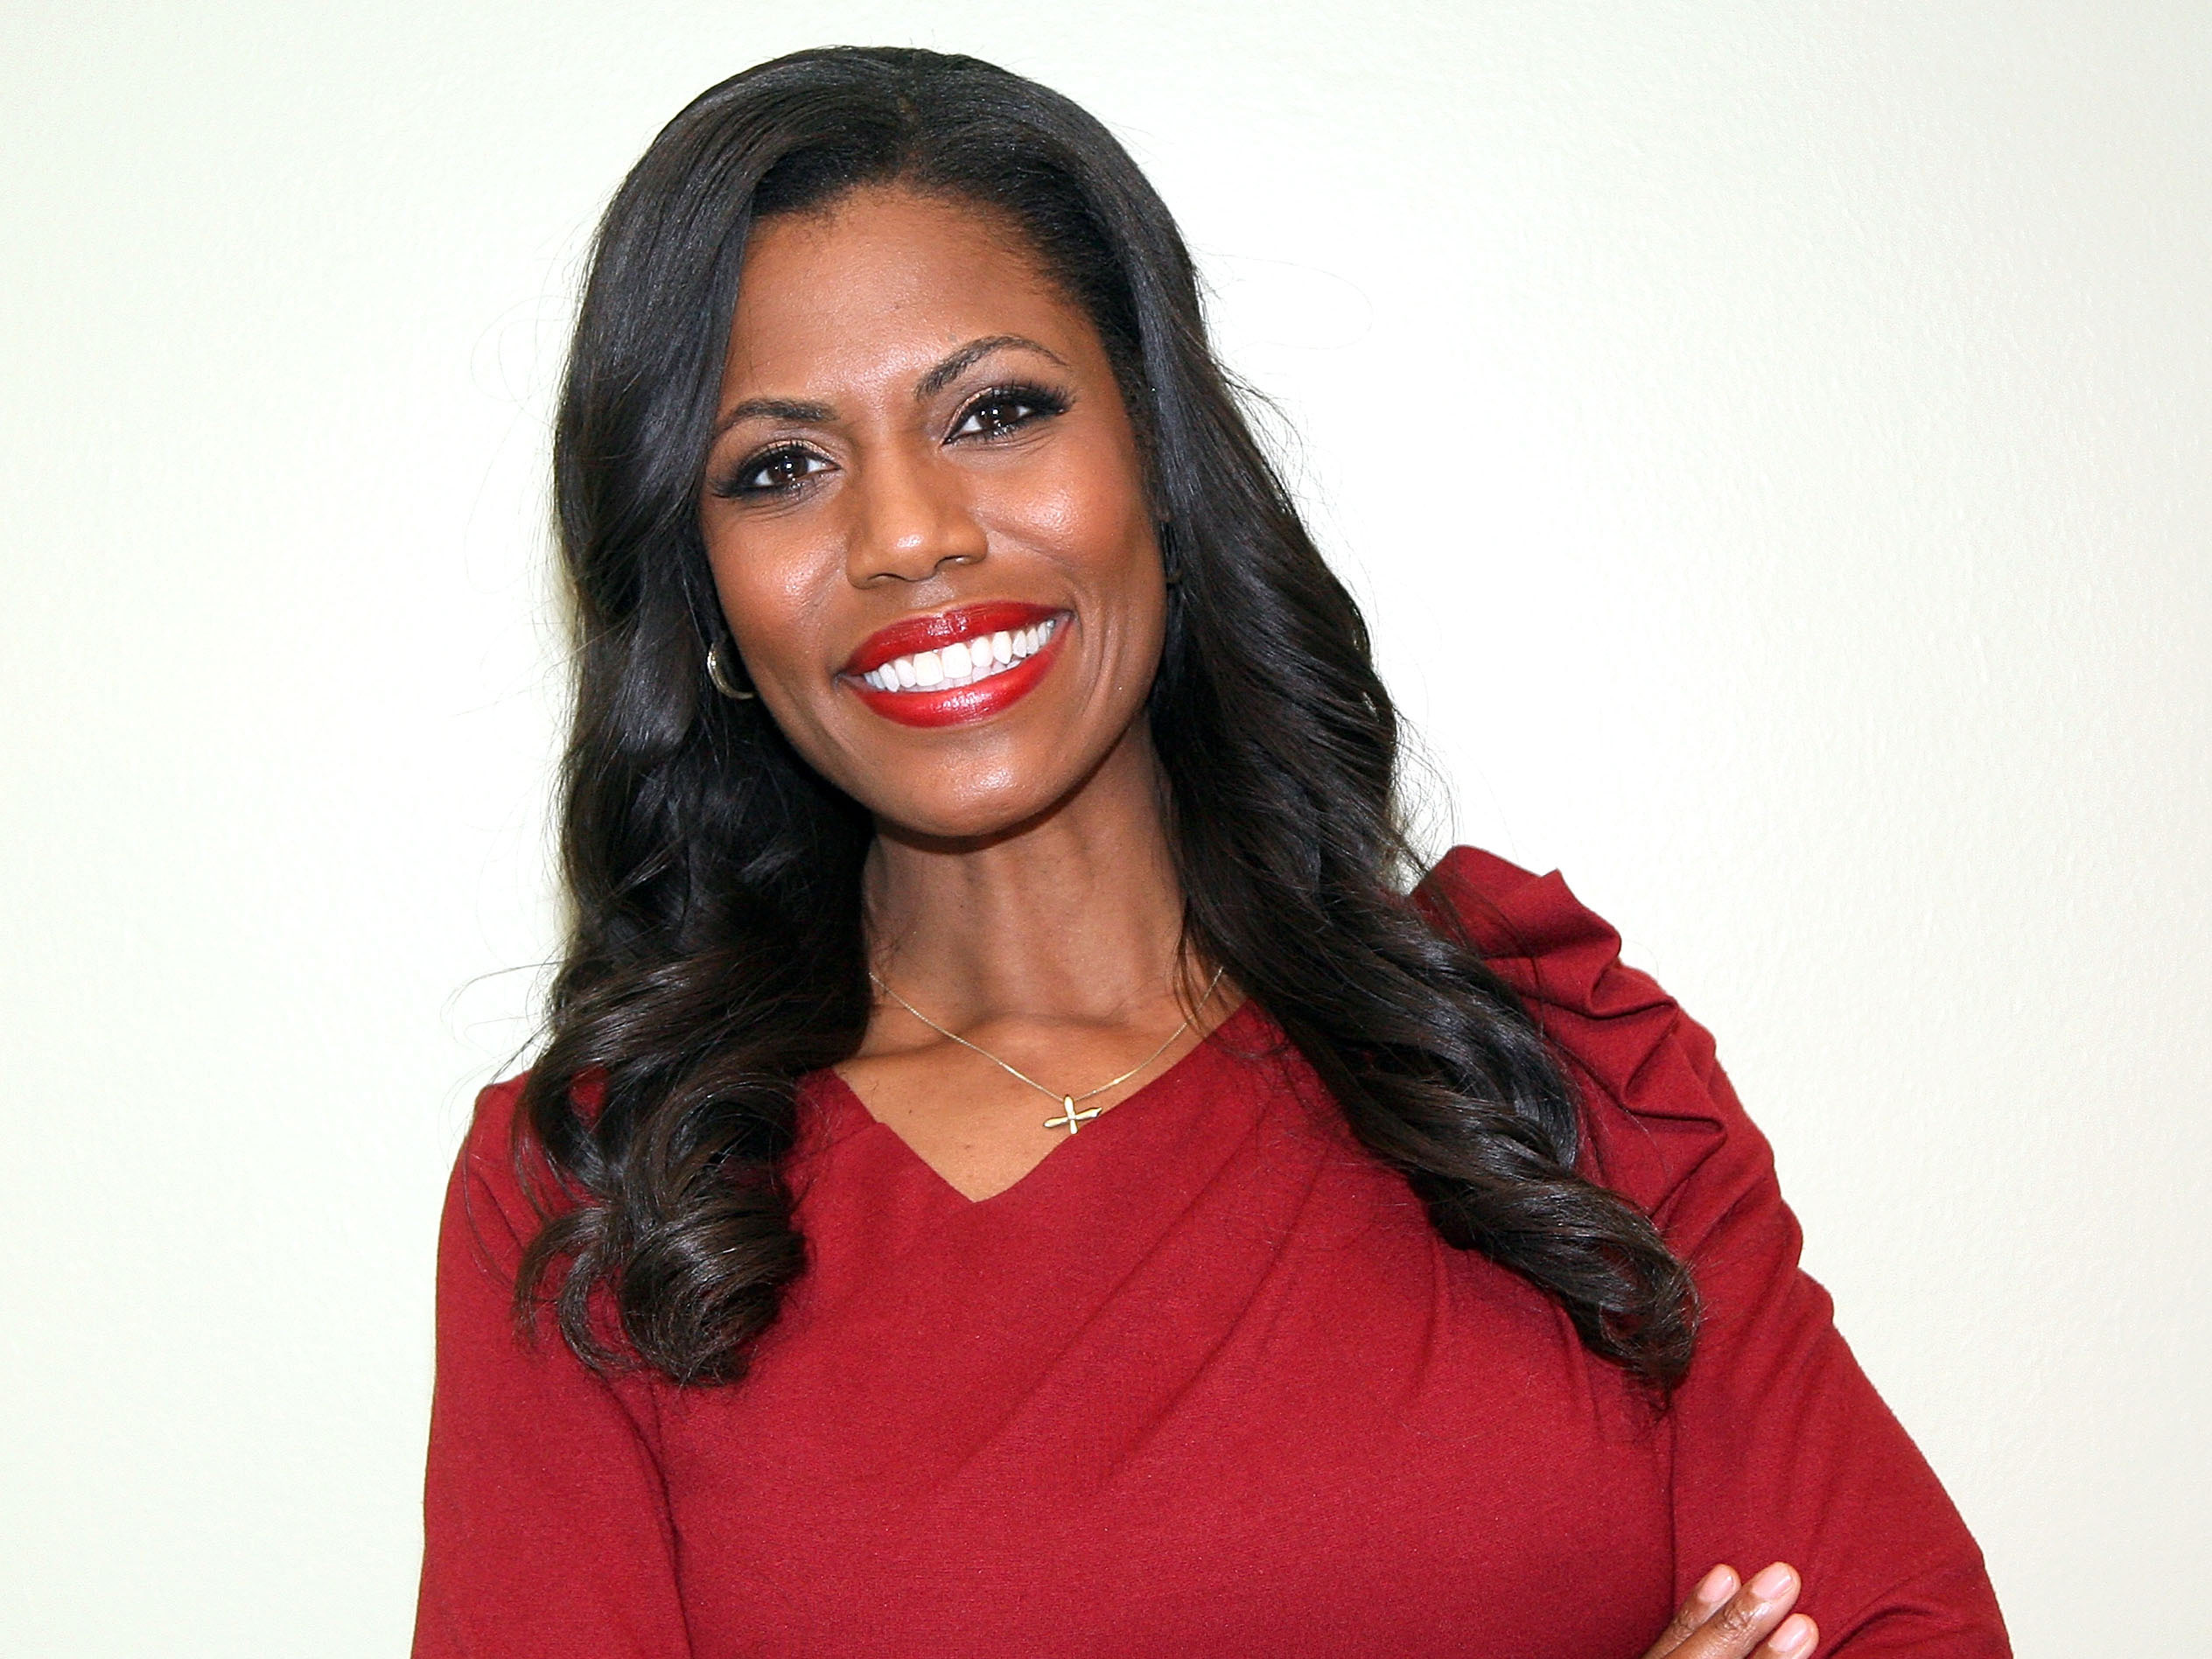 Omarosa Manigault Engagement Ring Amp Wedding Details Revealed